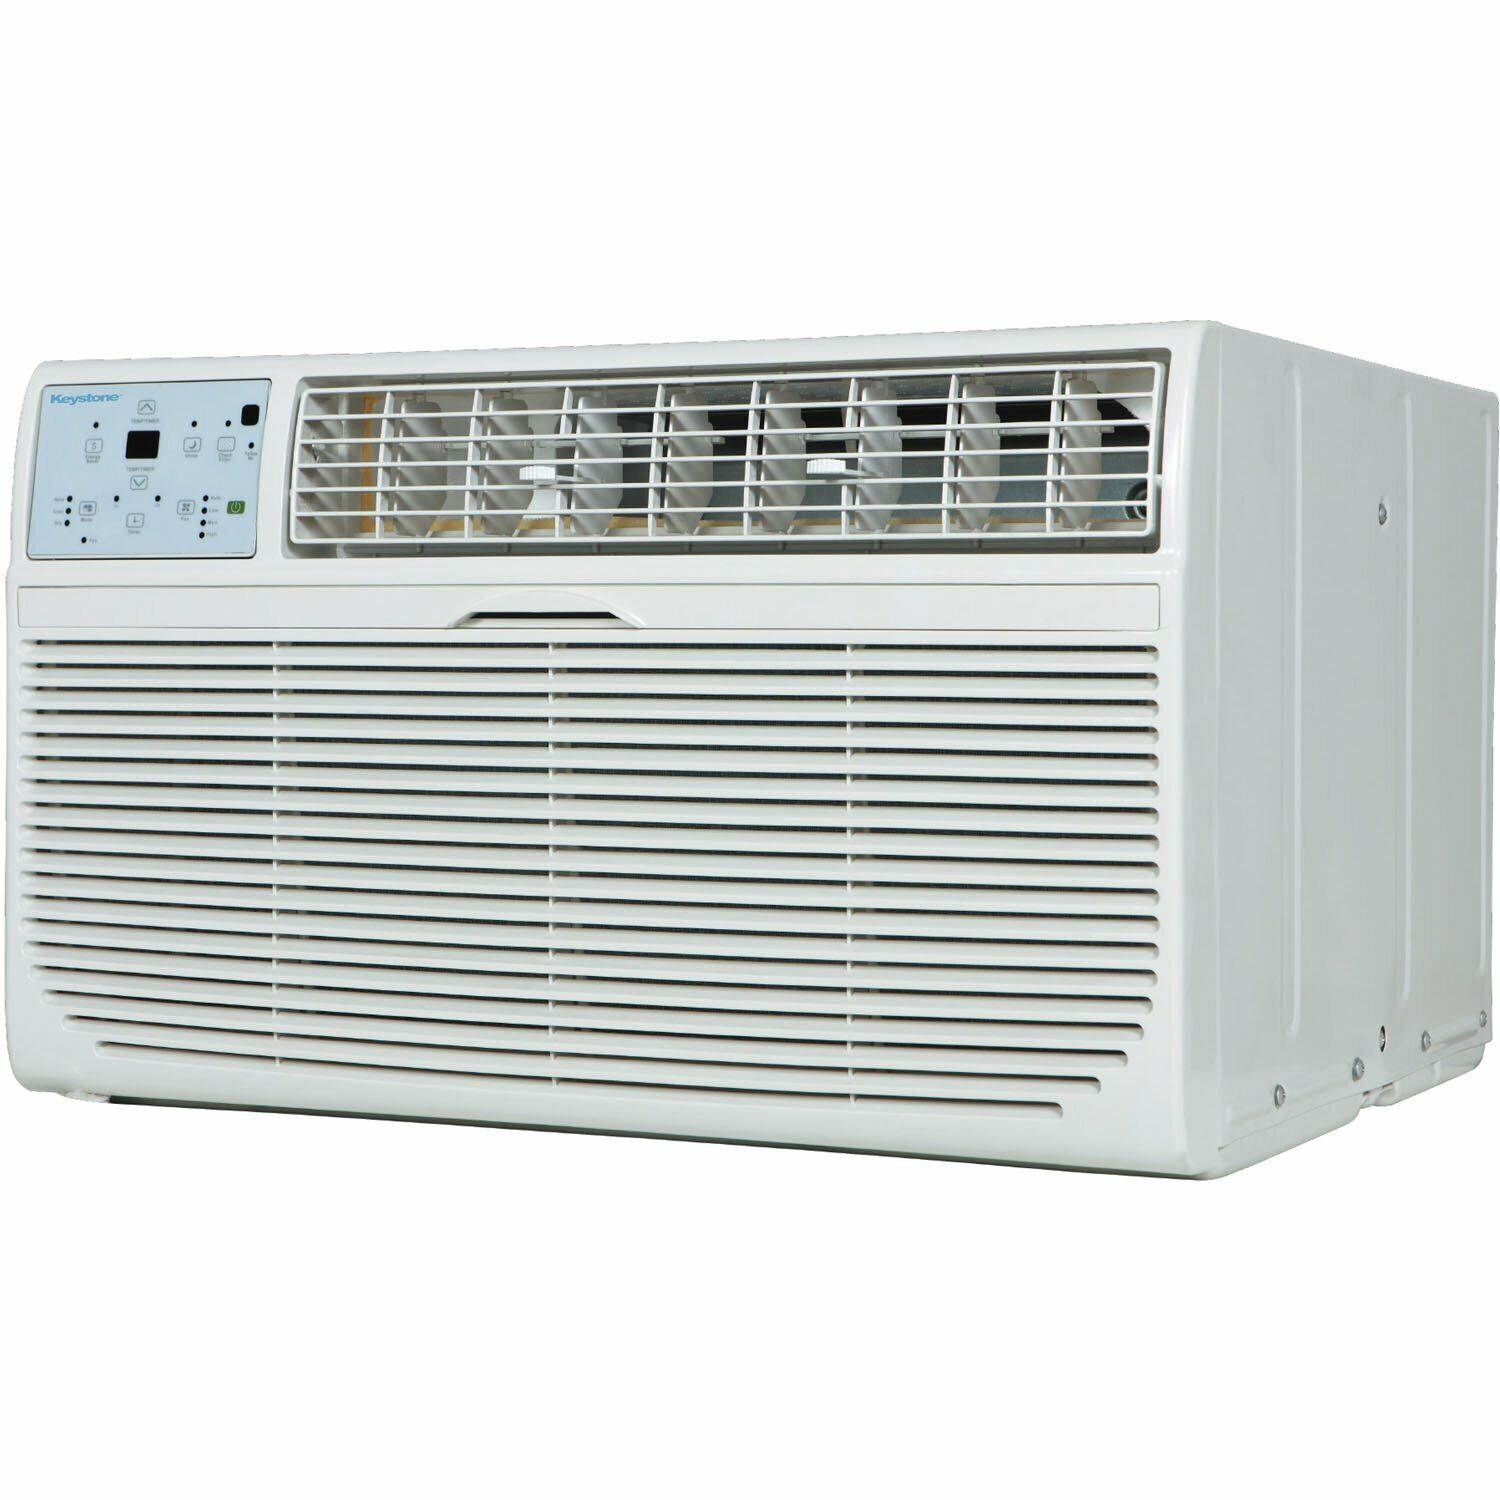 Keystone 14,000 Btu 230V Through-the-Wall Air Conditioner wi